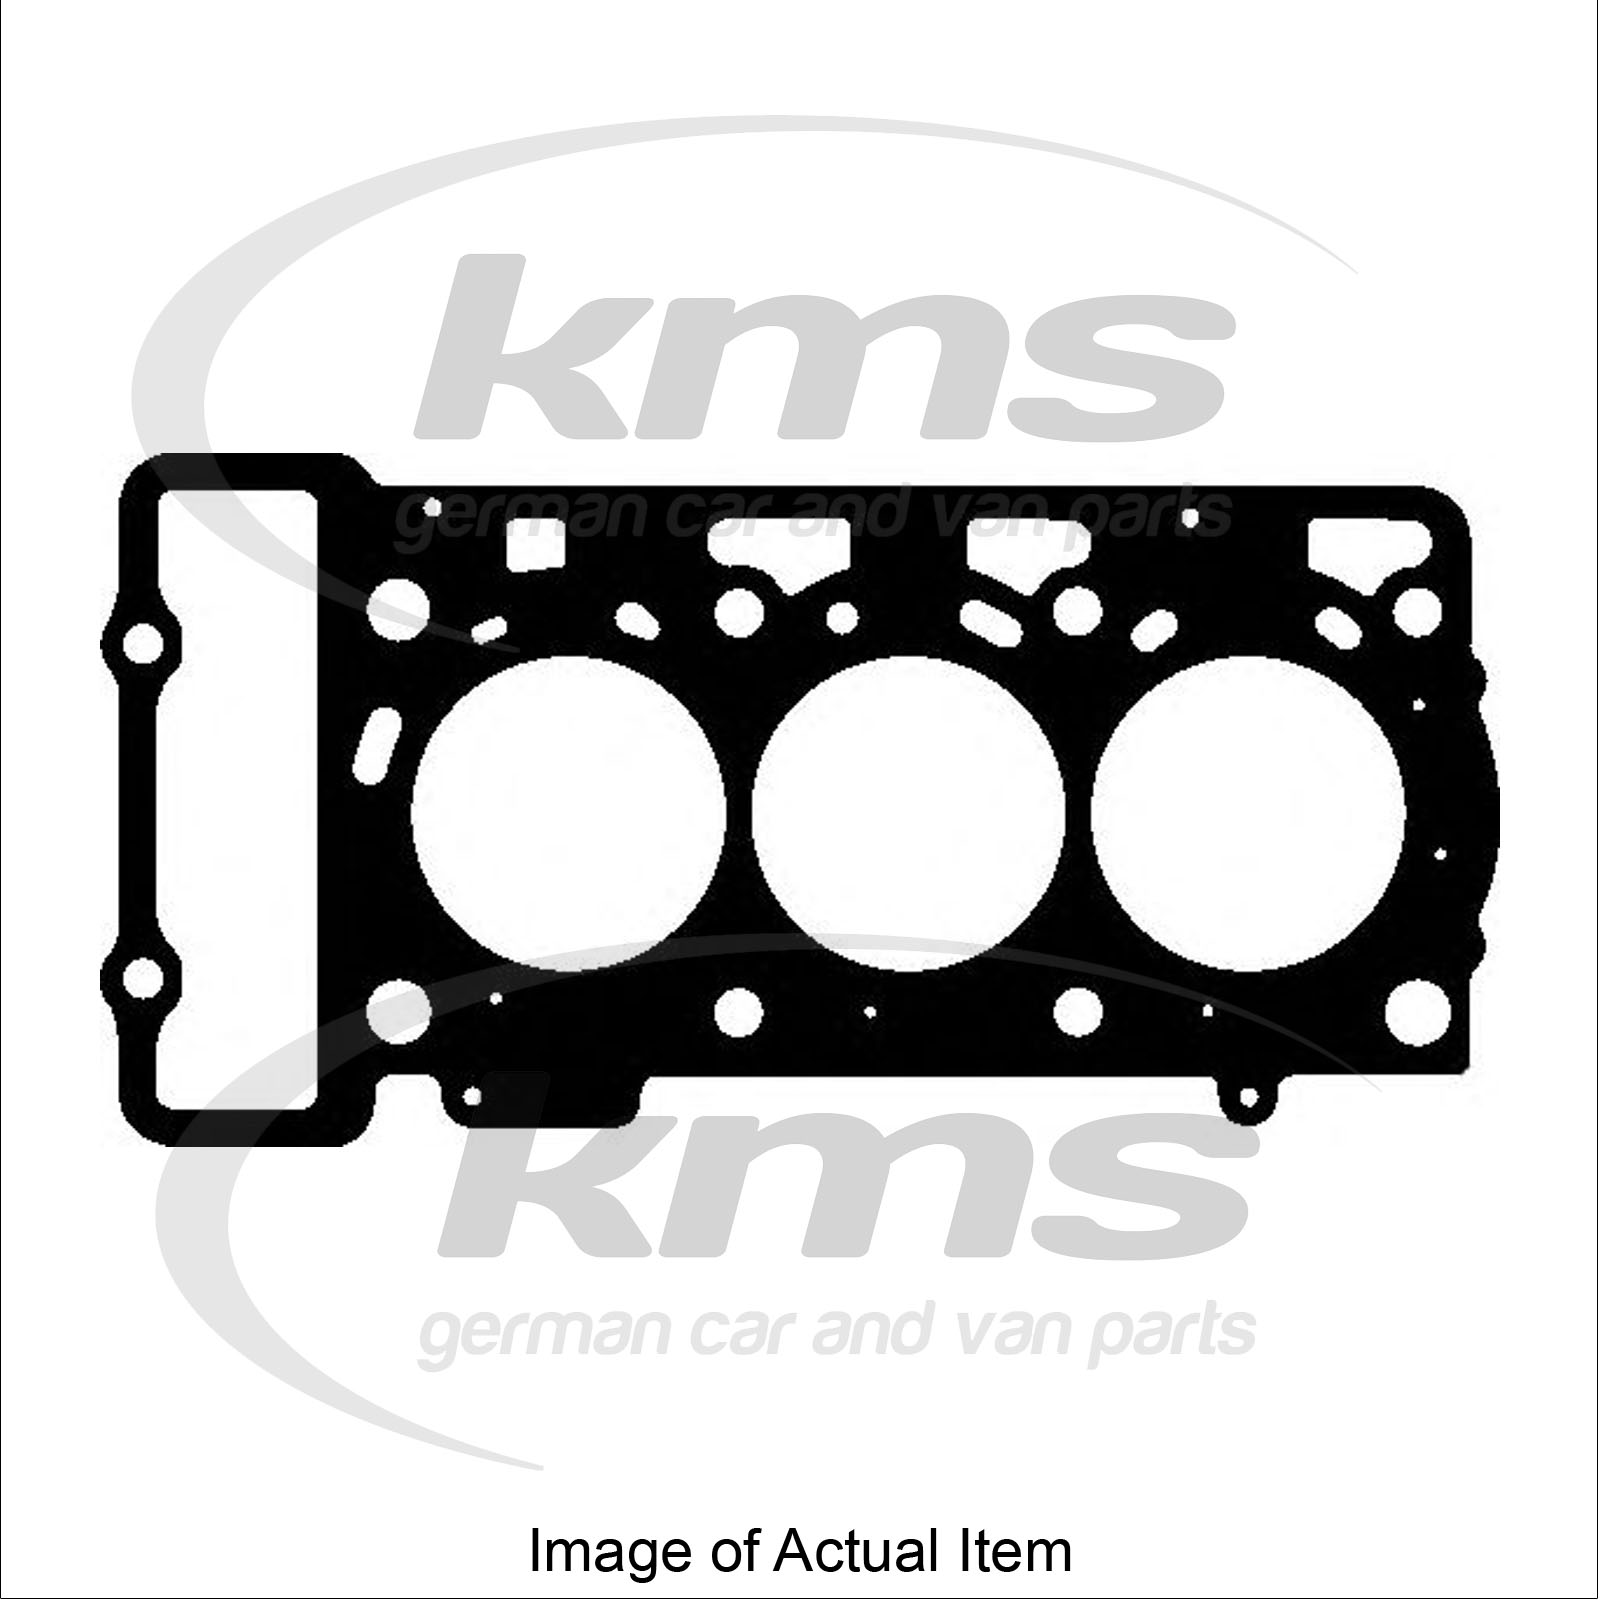 2015 Mini Roadster Head Gasket: CYLINDER HEAD GASKET SMART FORTWO Cabrio (450) 0.7 (450